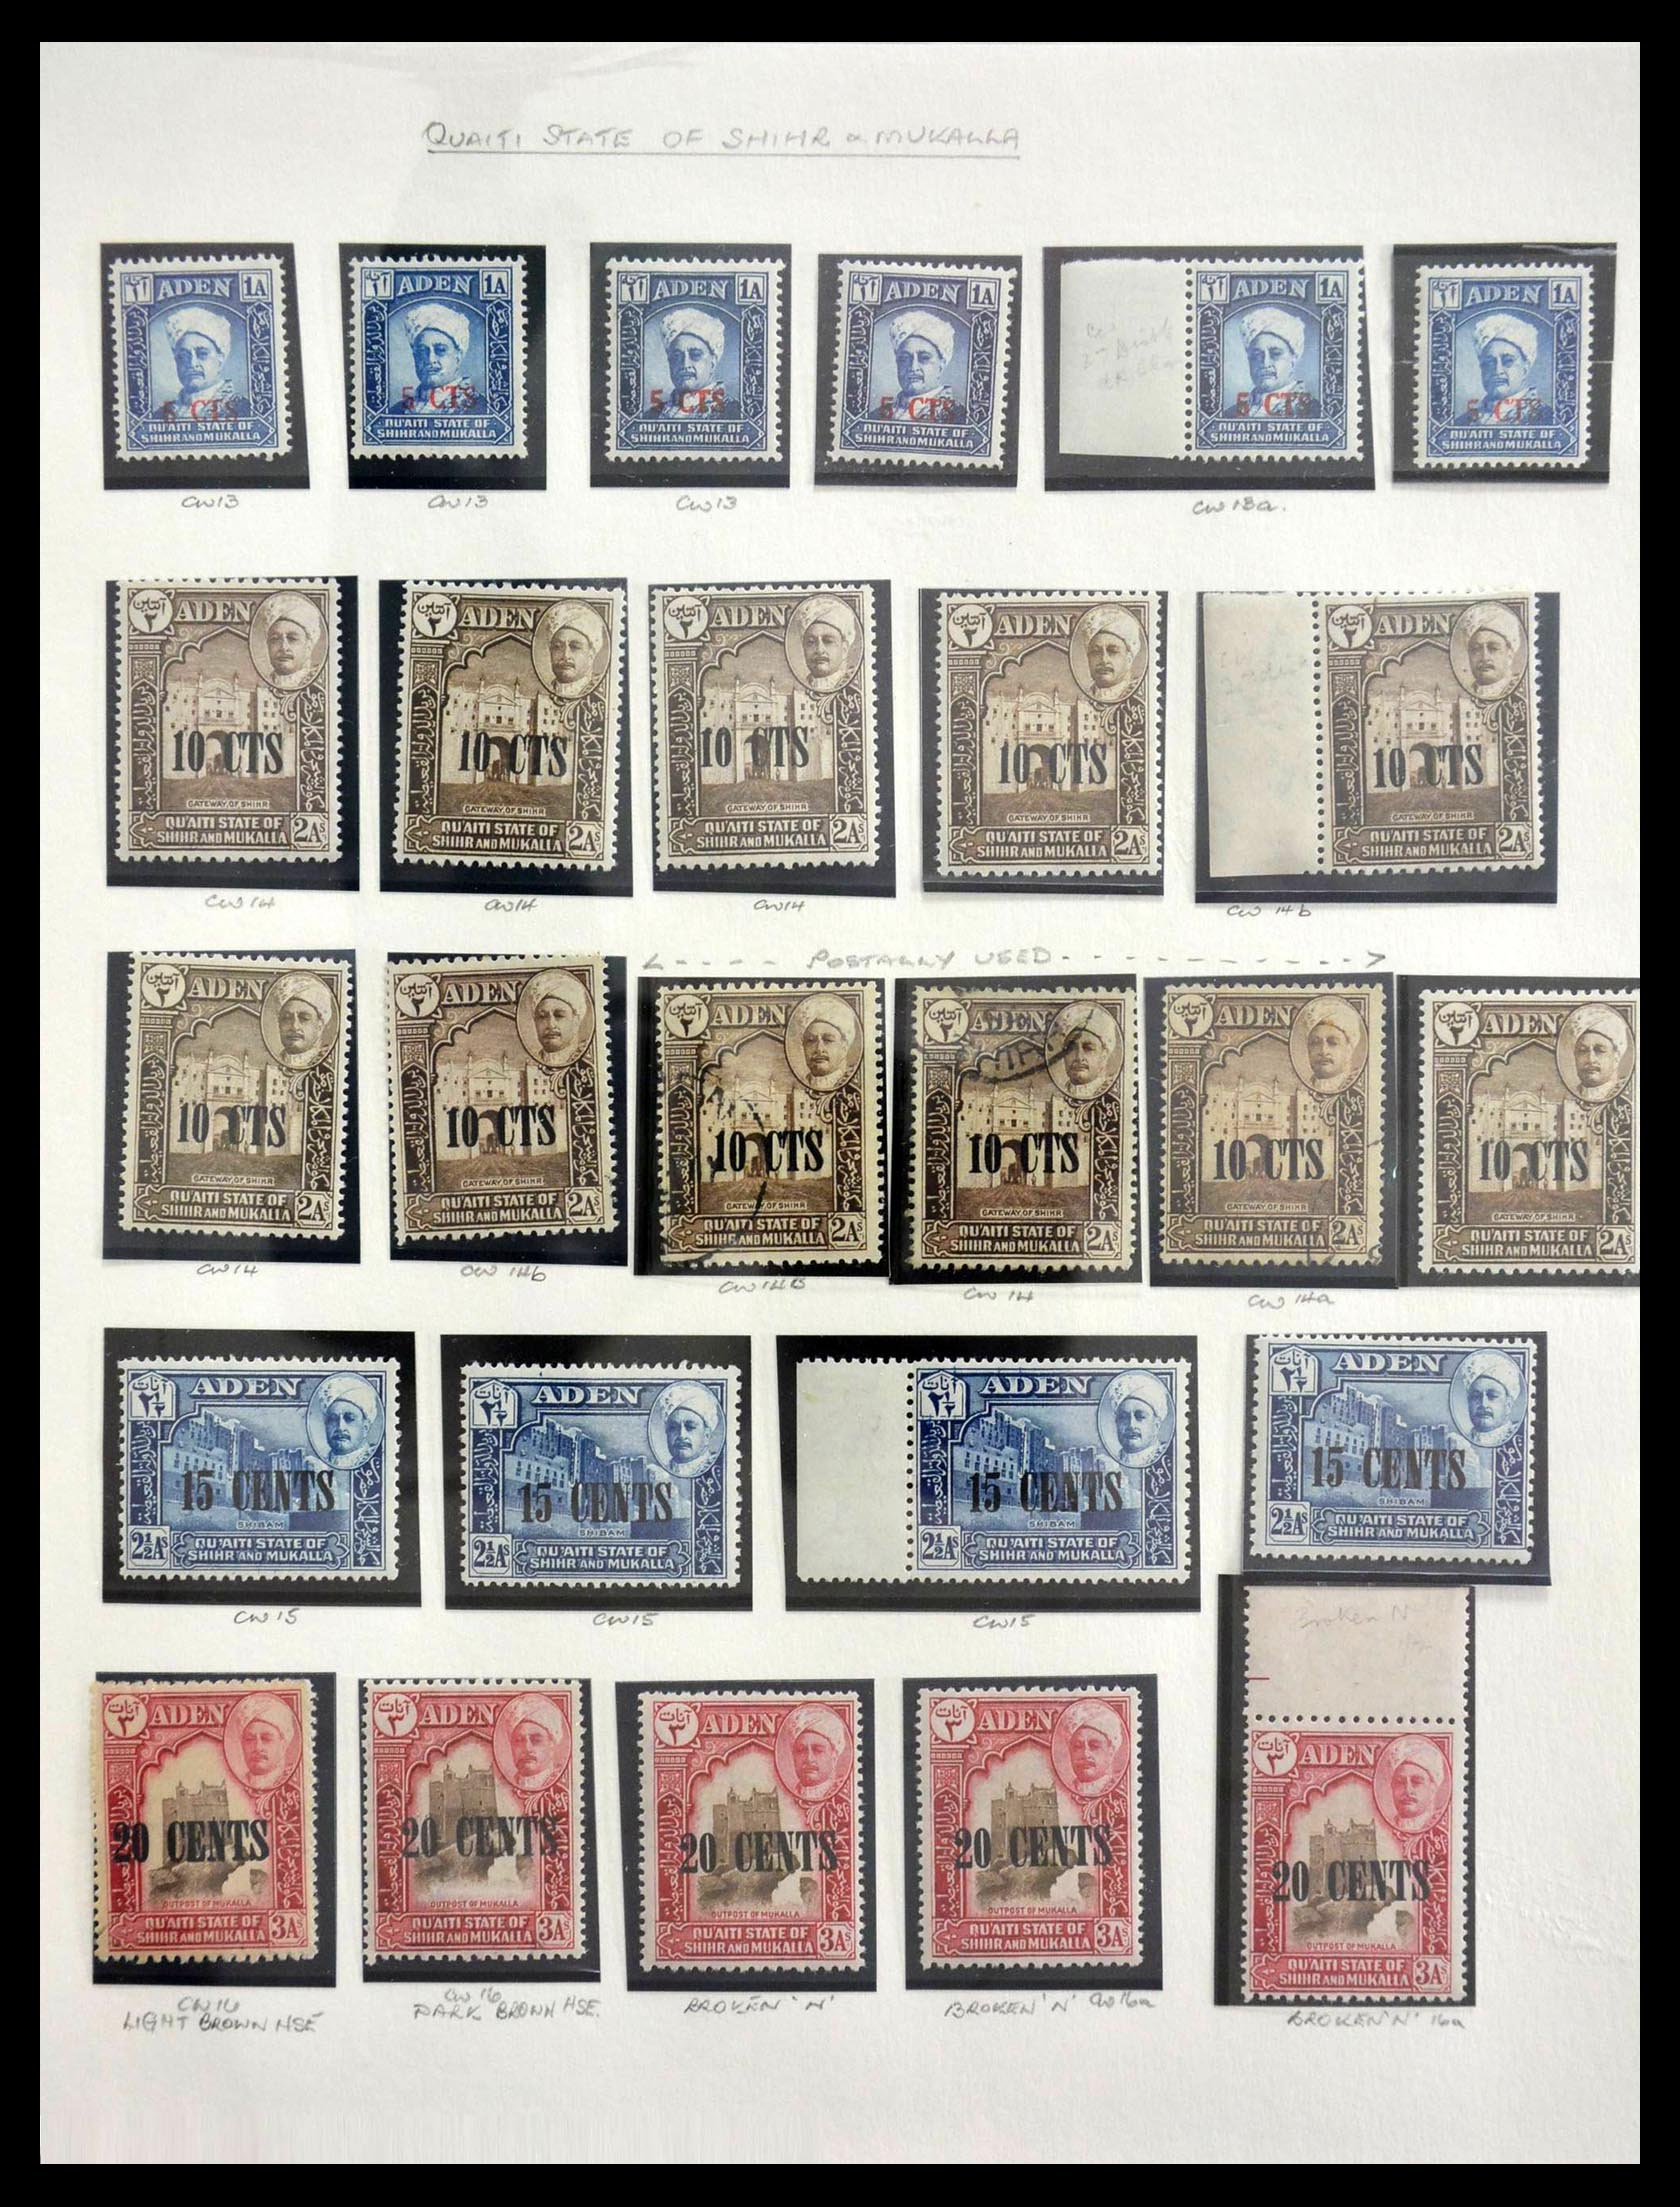 28672 018 - Stamp collection 28672 Aden Qu'aiti State 1942-1966.